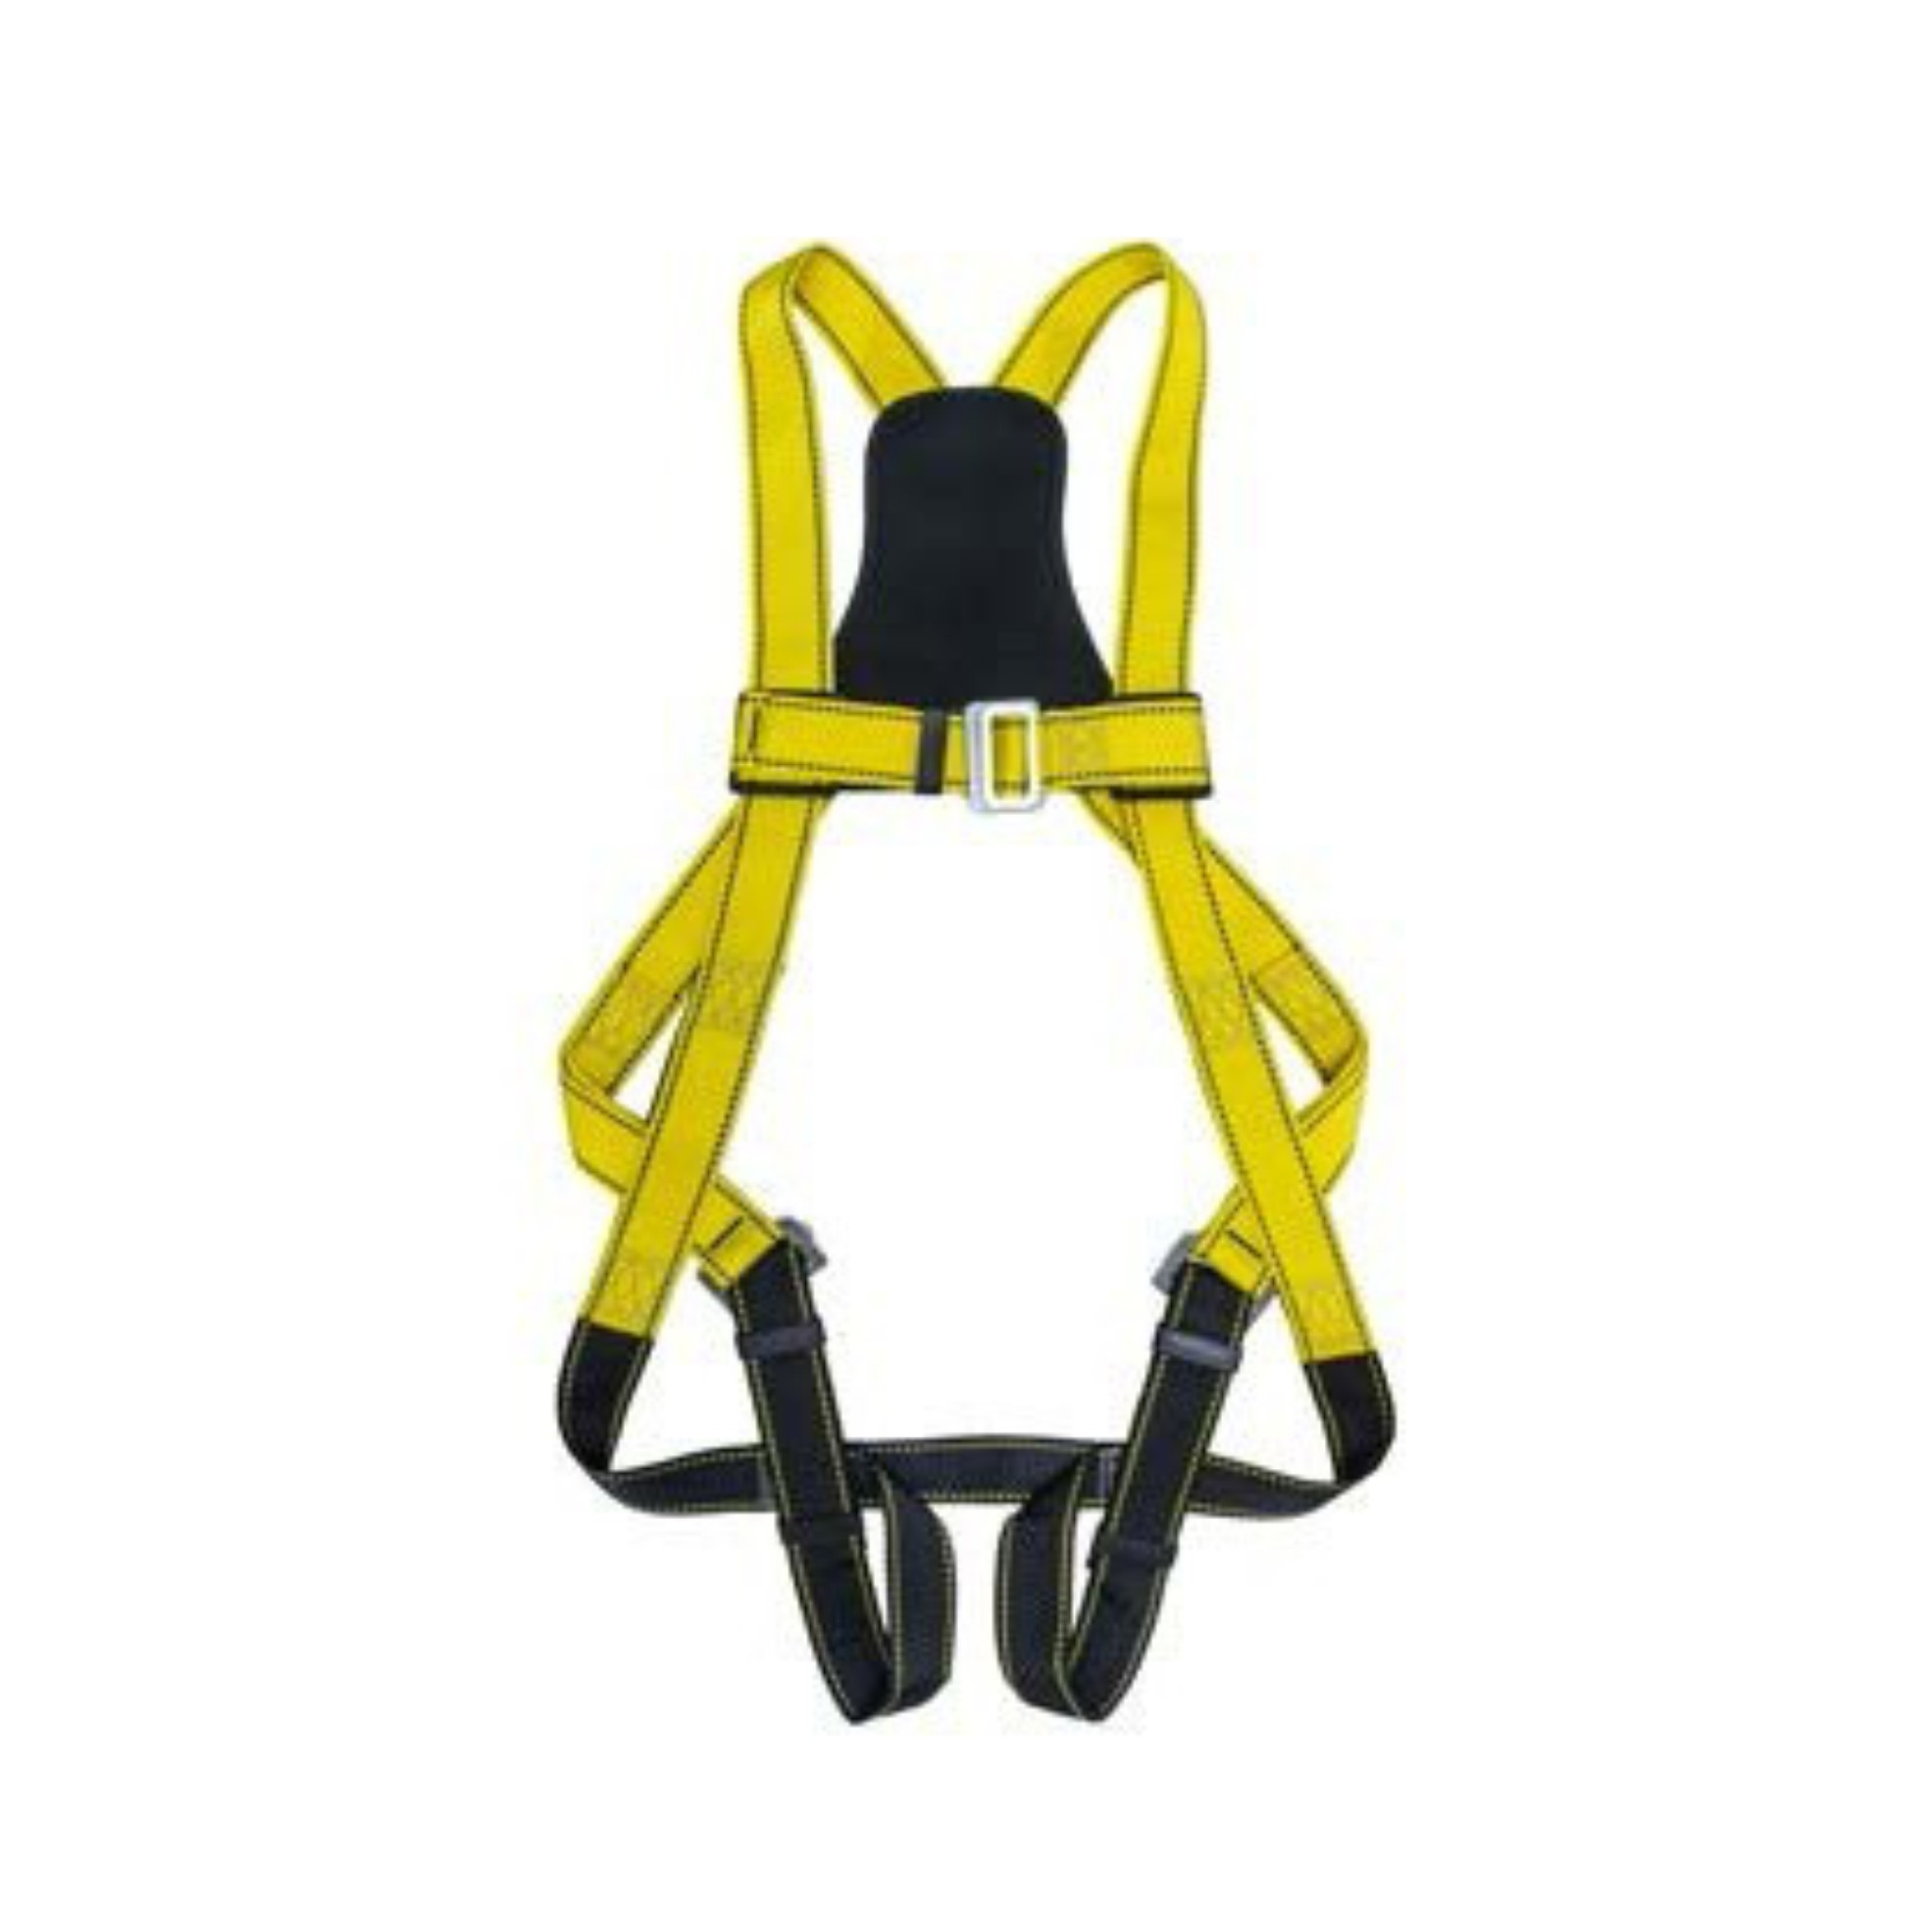 HONEYWELL MB9000 - FULL BODY HARNESS